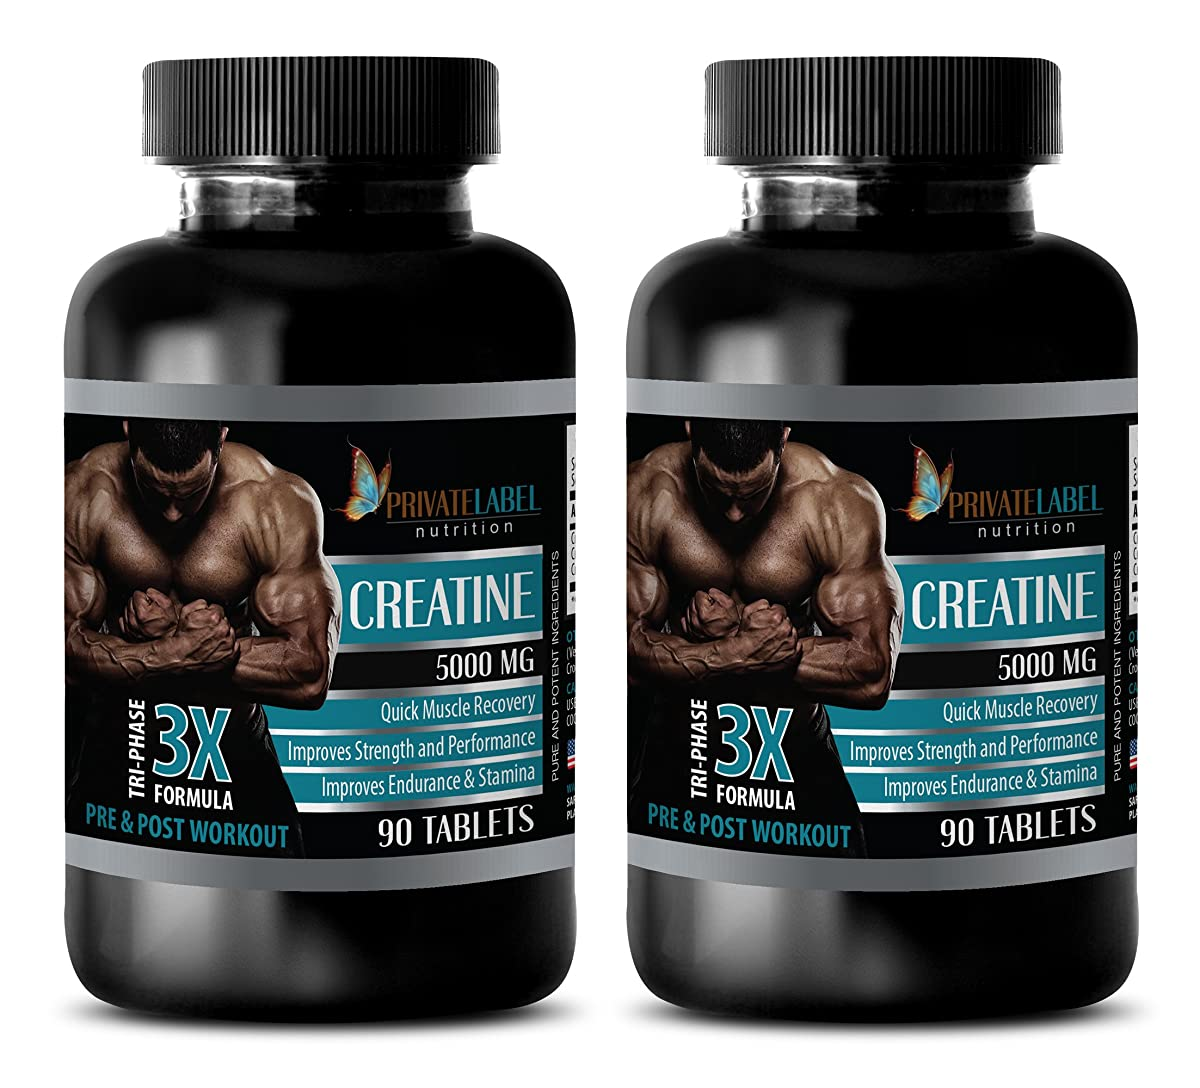 fat loss supplement - CREATINE TRI-PHASE - 3X FORMULA - PRE & POST WORKOUT - creatine in pill form - 2 Bottles (180 Tablets)